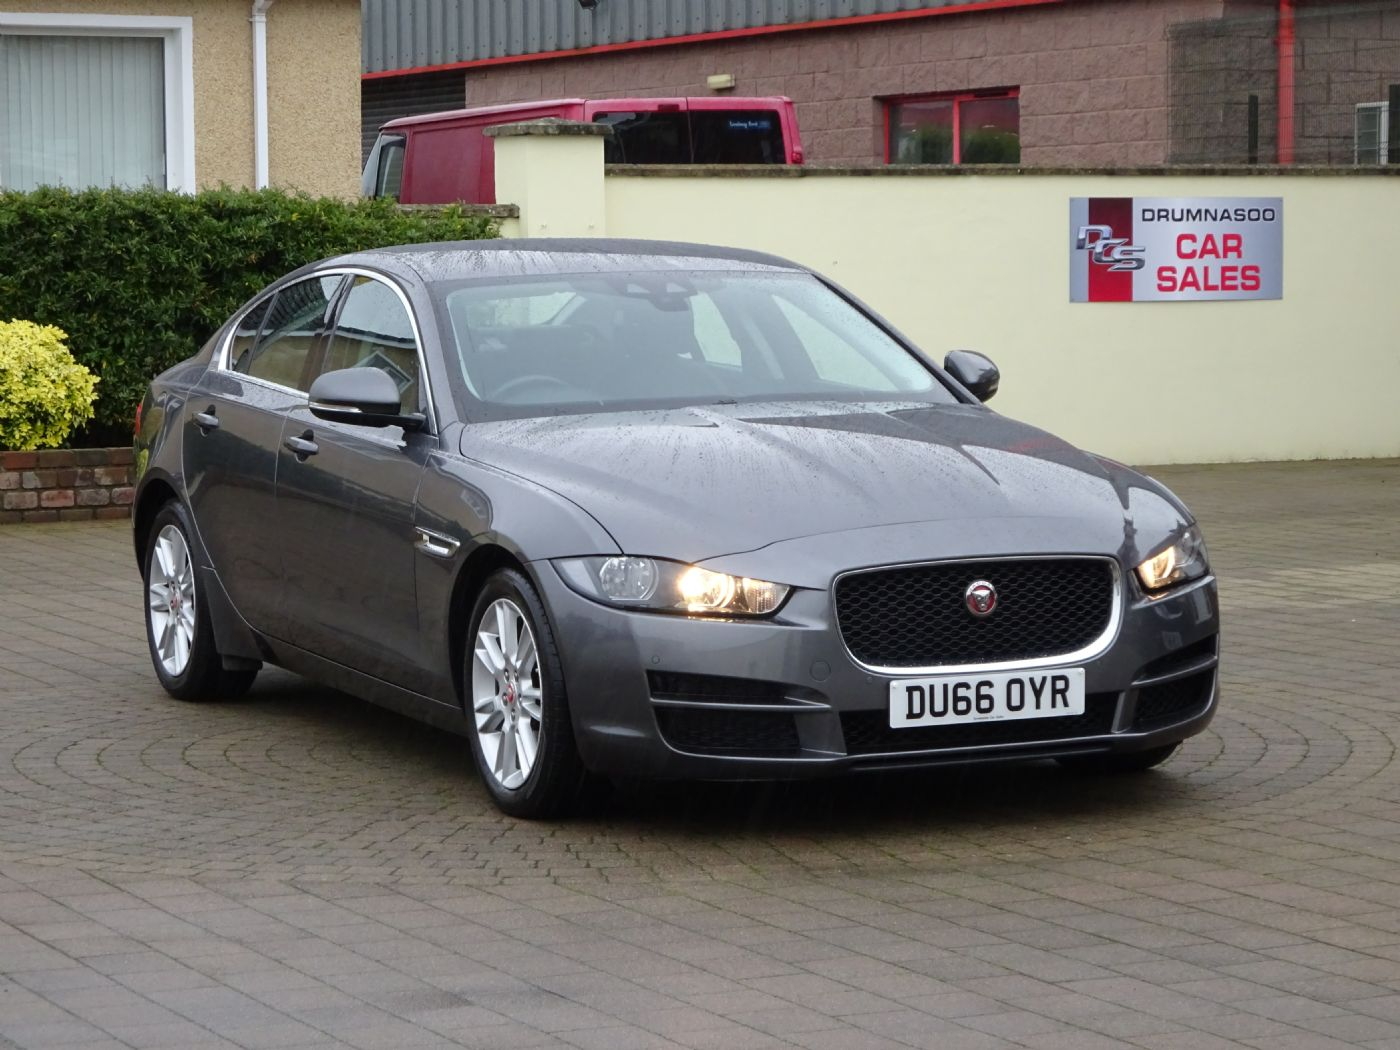 Jaguar XE Prestige 2.0 D Auto, Leather seats, Sat nav